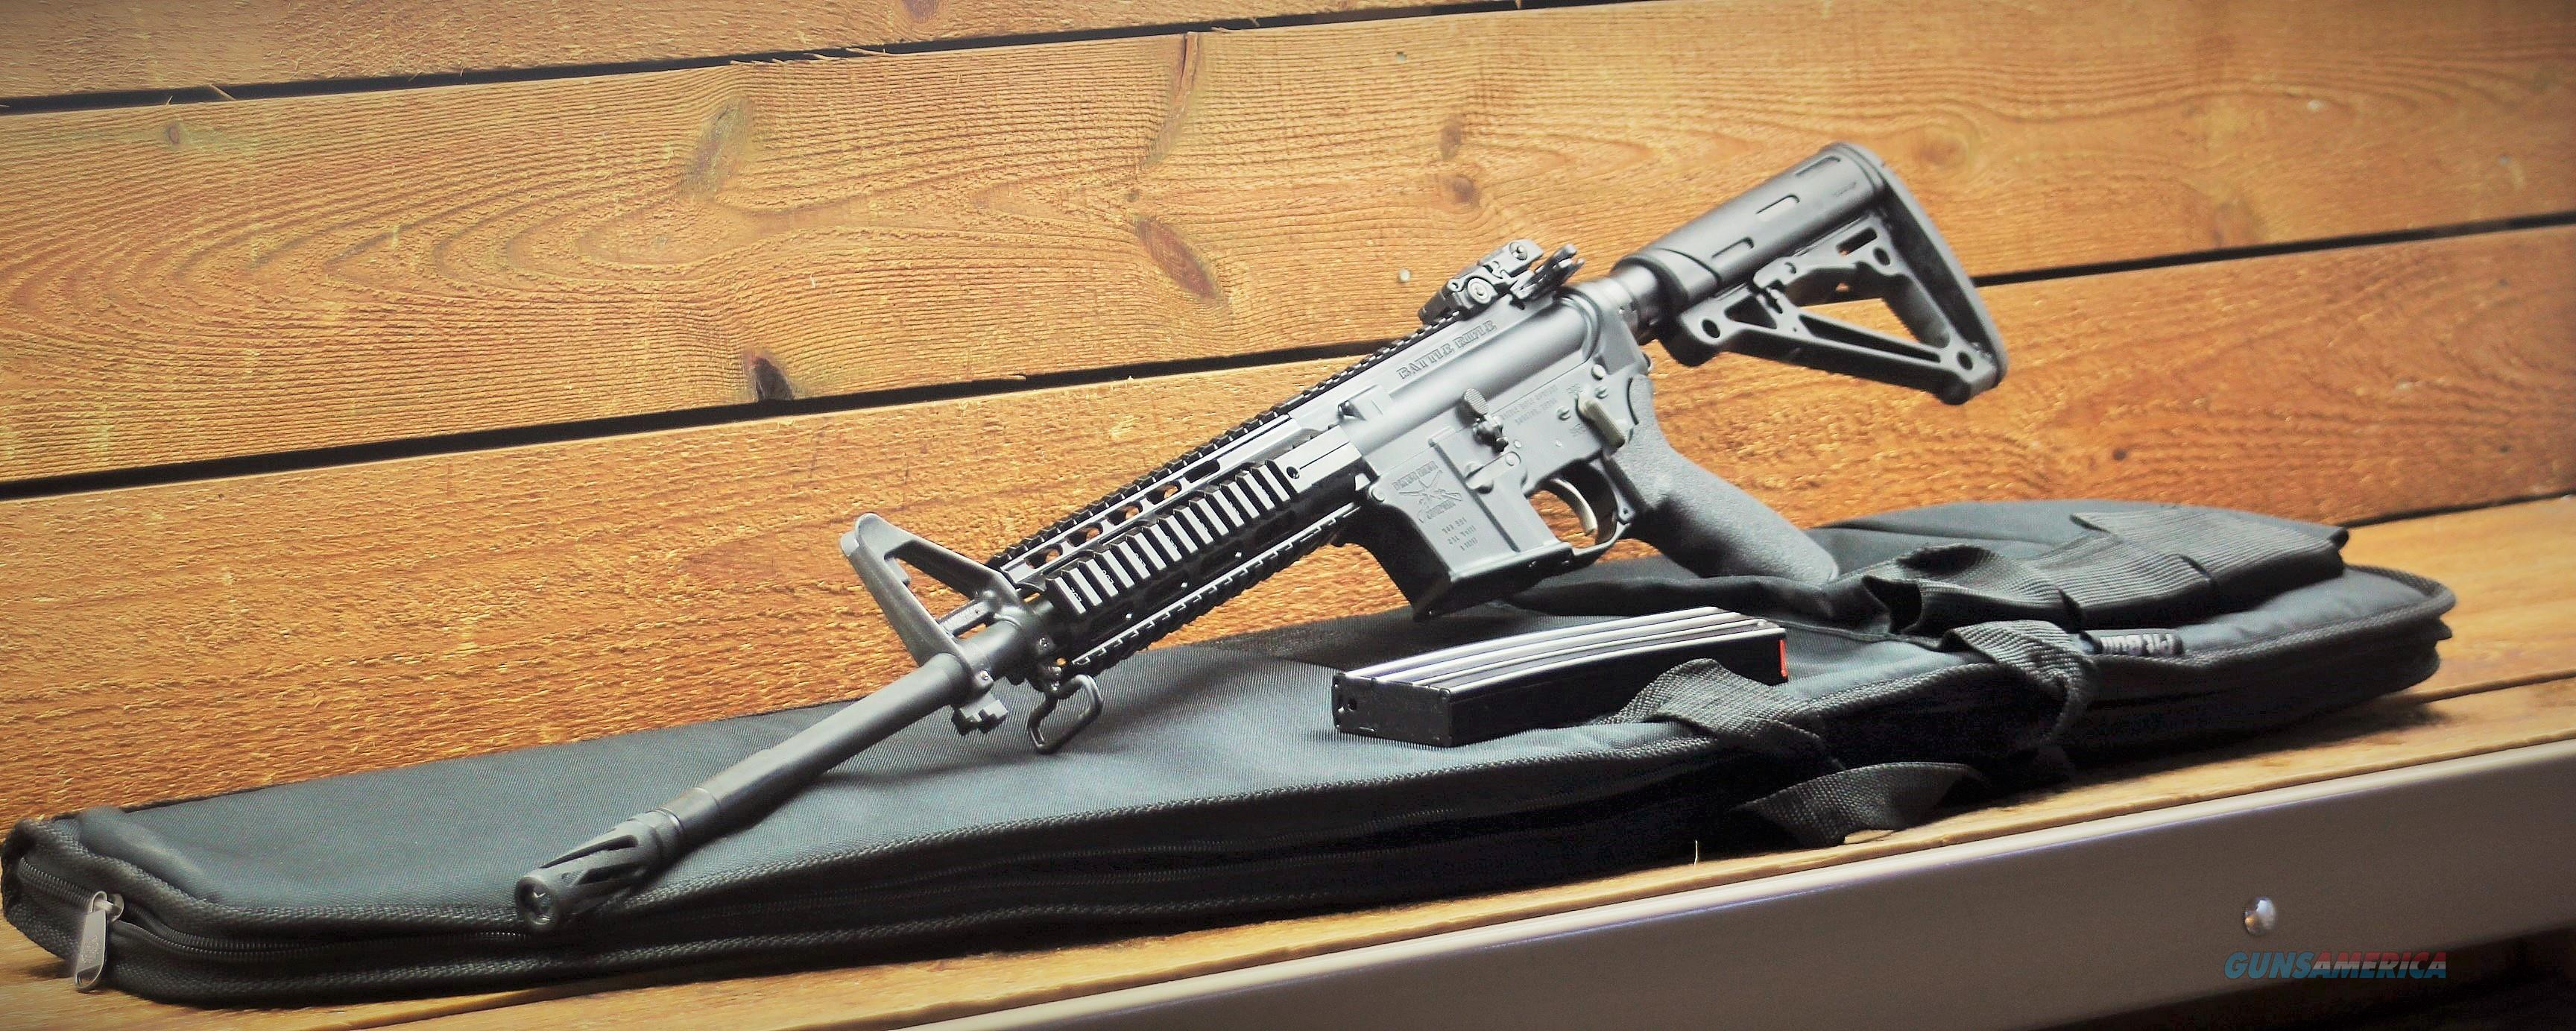 "BATTLE RIFLE 16"" 556 SPARTAN 5.56MM SPARTAN M4 PROFILE M 4 AR-15 AR15 The BR4 tactical rifles EASY PAY $59  Guns > Rifles > B Misc Rifles"